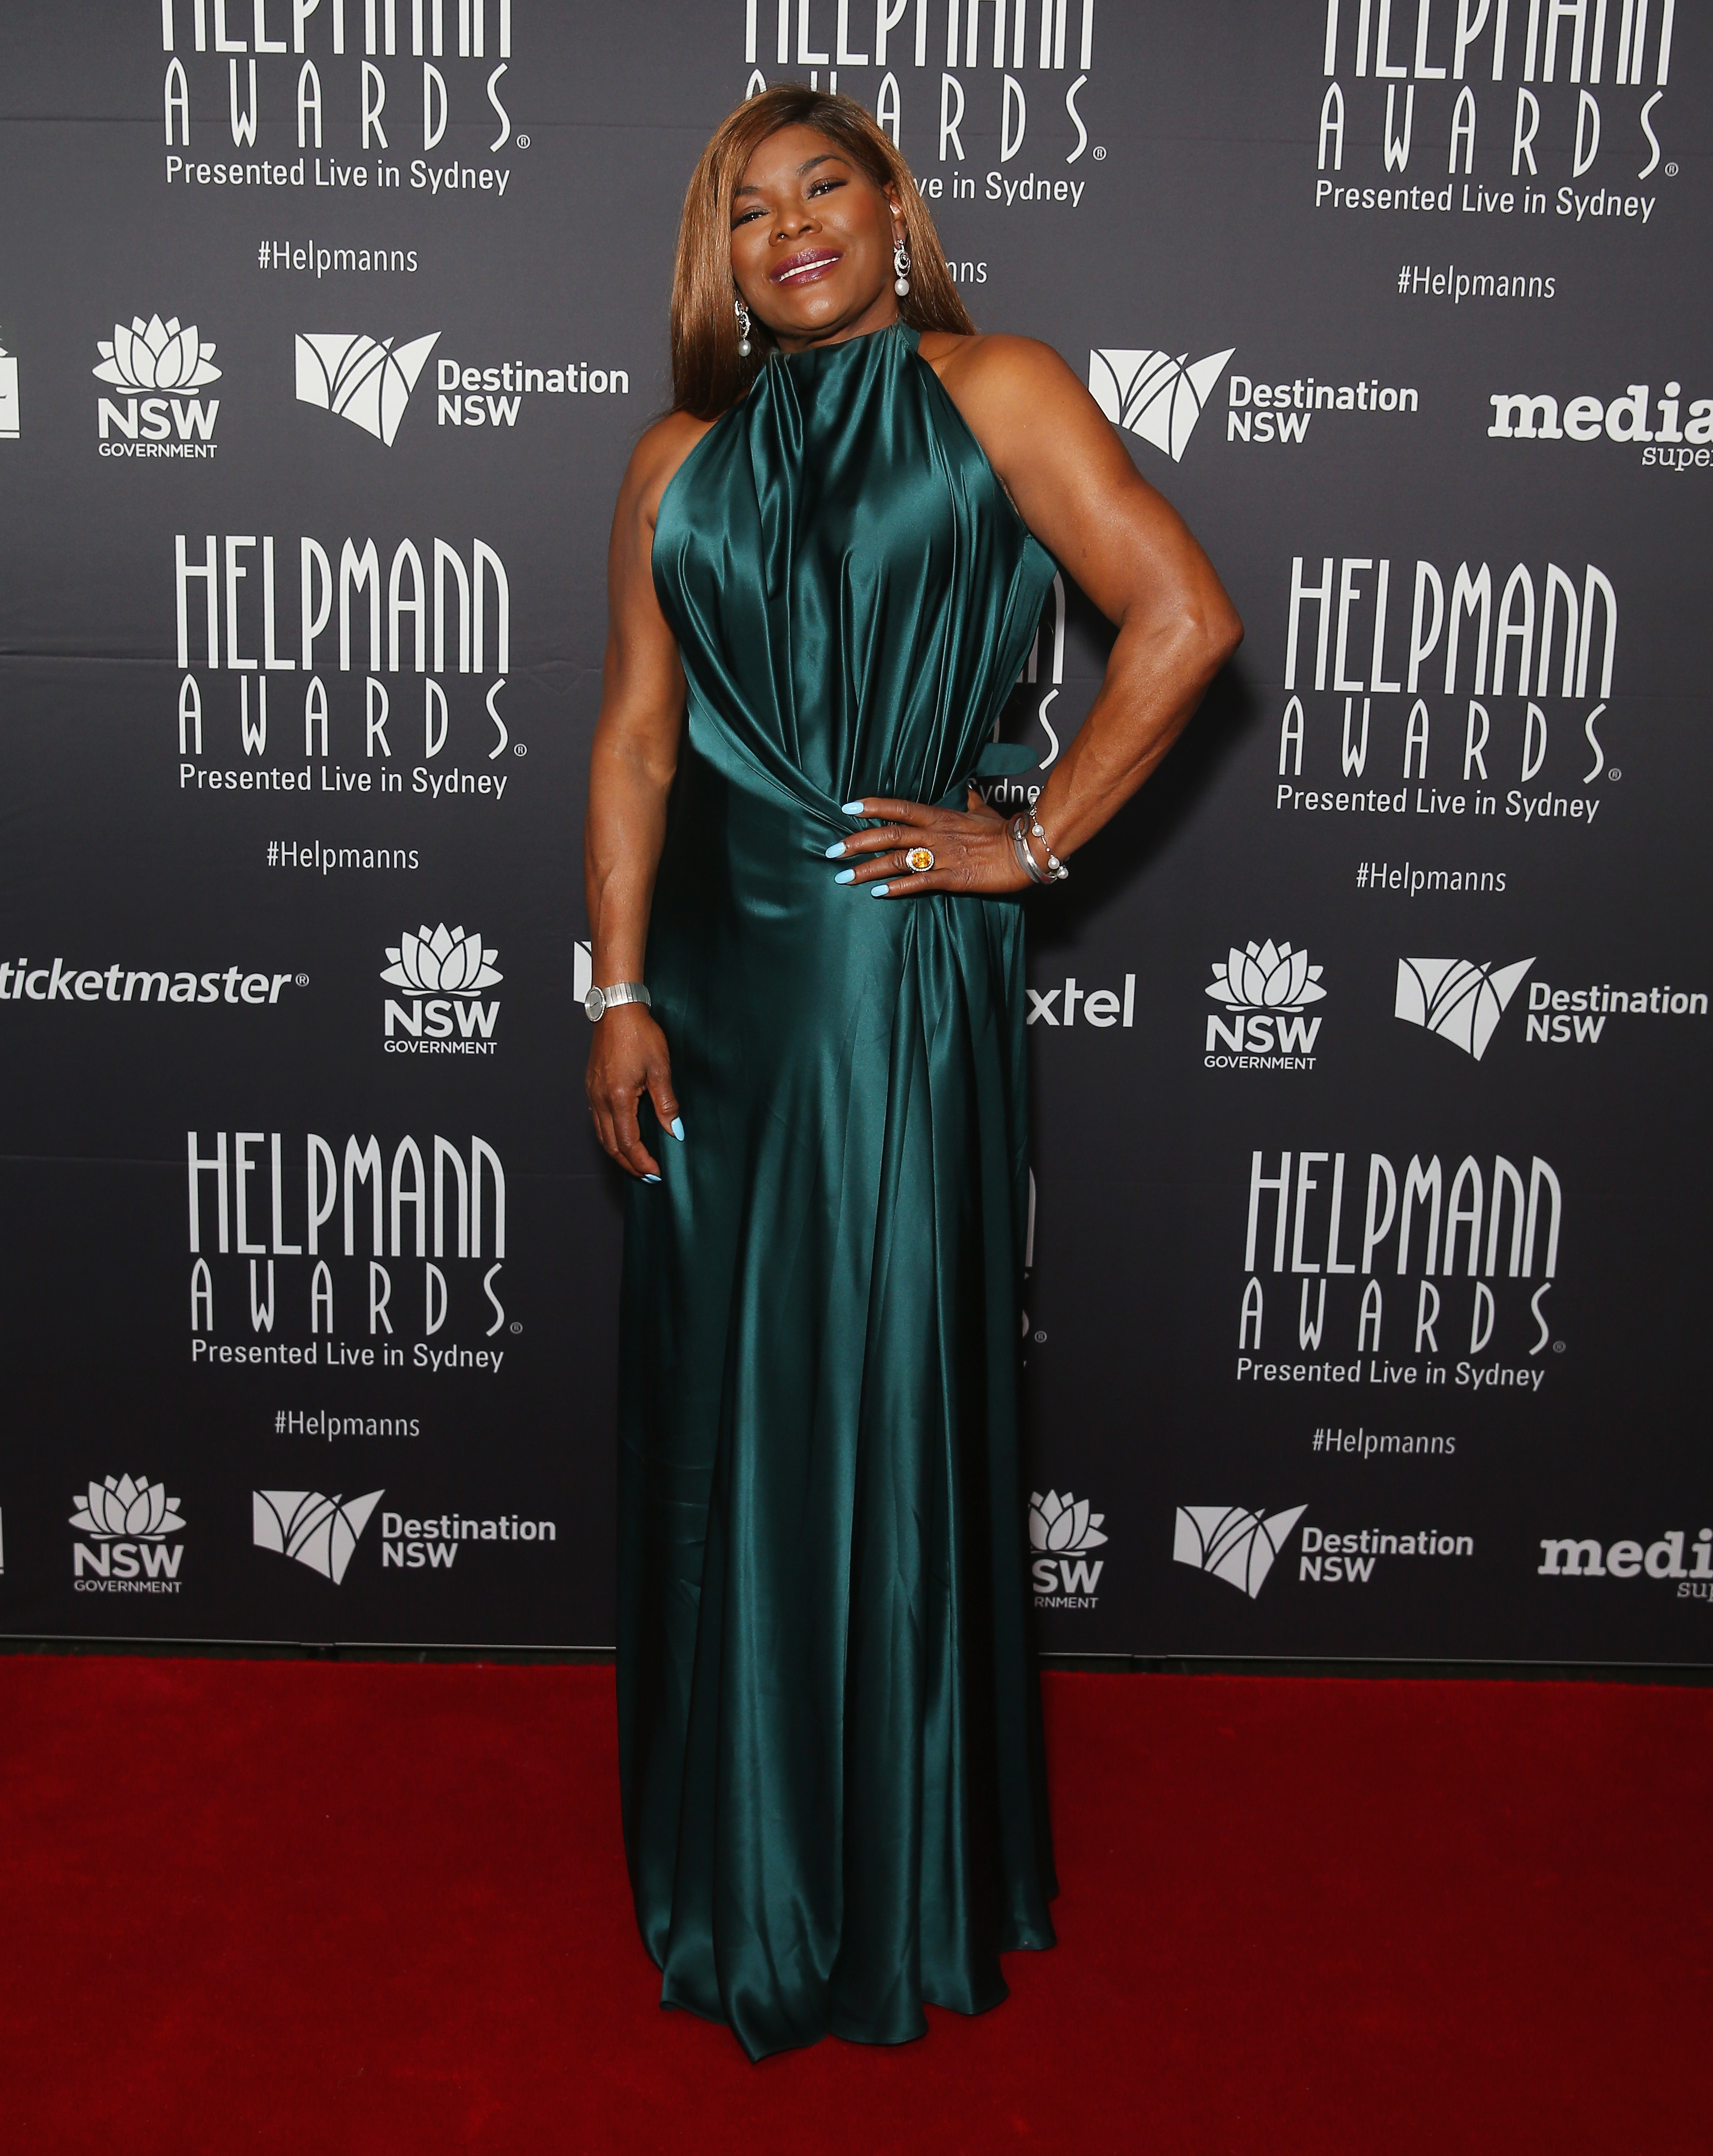 """<p>Marcia Hines has been shining on the Australian stage for decades and at last night's Helpmann Awards the performer dazzled on the red carpet in a classic emerald, halter-neck gown from leading local designer Bianca Spender.</p> <p>The event was held at Sydney's Capitol Theatre and while it lacks the gaudy glamour of the <a href=""""http://style.nine.com.au/2017/04/23/23/03/logies-2017-best-and-worst-dressed"""" target=""""_blank"""" draggable=""""false"""">Logie Awards</a>, presenter Deborah Hutton in Vera Wang, singer Dami Im in Carla Zampatti and leading man Tim Draxl all scored polished points on the red carpet.</p> <p><em>The Bodyguard</em> star Paulini dropped her guard and just served body in a fitted gown from bridal label Ziolkowski.</p> <p><em>Today Extra</em> host David Campbell in Calibre was joined on the red carpet by his producer wife Lisa in Carla Zampatti, who has been reinvigorating Sydney's theatre scene at the Hayes Theatre. Proud father Jimmy Barnes also descended on the red carpet in a matching jacket.</p> <p>Marcia missed out on an award at the event with <em>Kinky Boots</em> star Callum Francis winning best actor in a musical, <em>My Fair Lady</em>'s Anna O'Byrne awarded best actress in a musical and Belvoir Street Theatre's <em>The Drover's Wife</em> cleaning up the theatre awards.</p> <p>See the stars take their style bows here.</p>"""